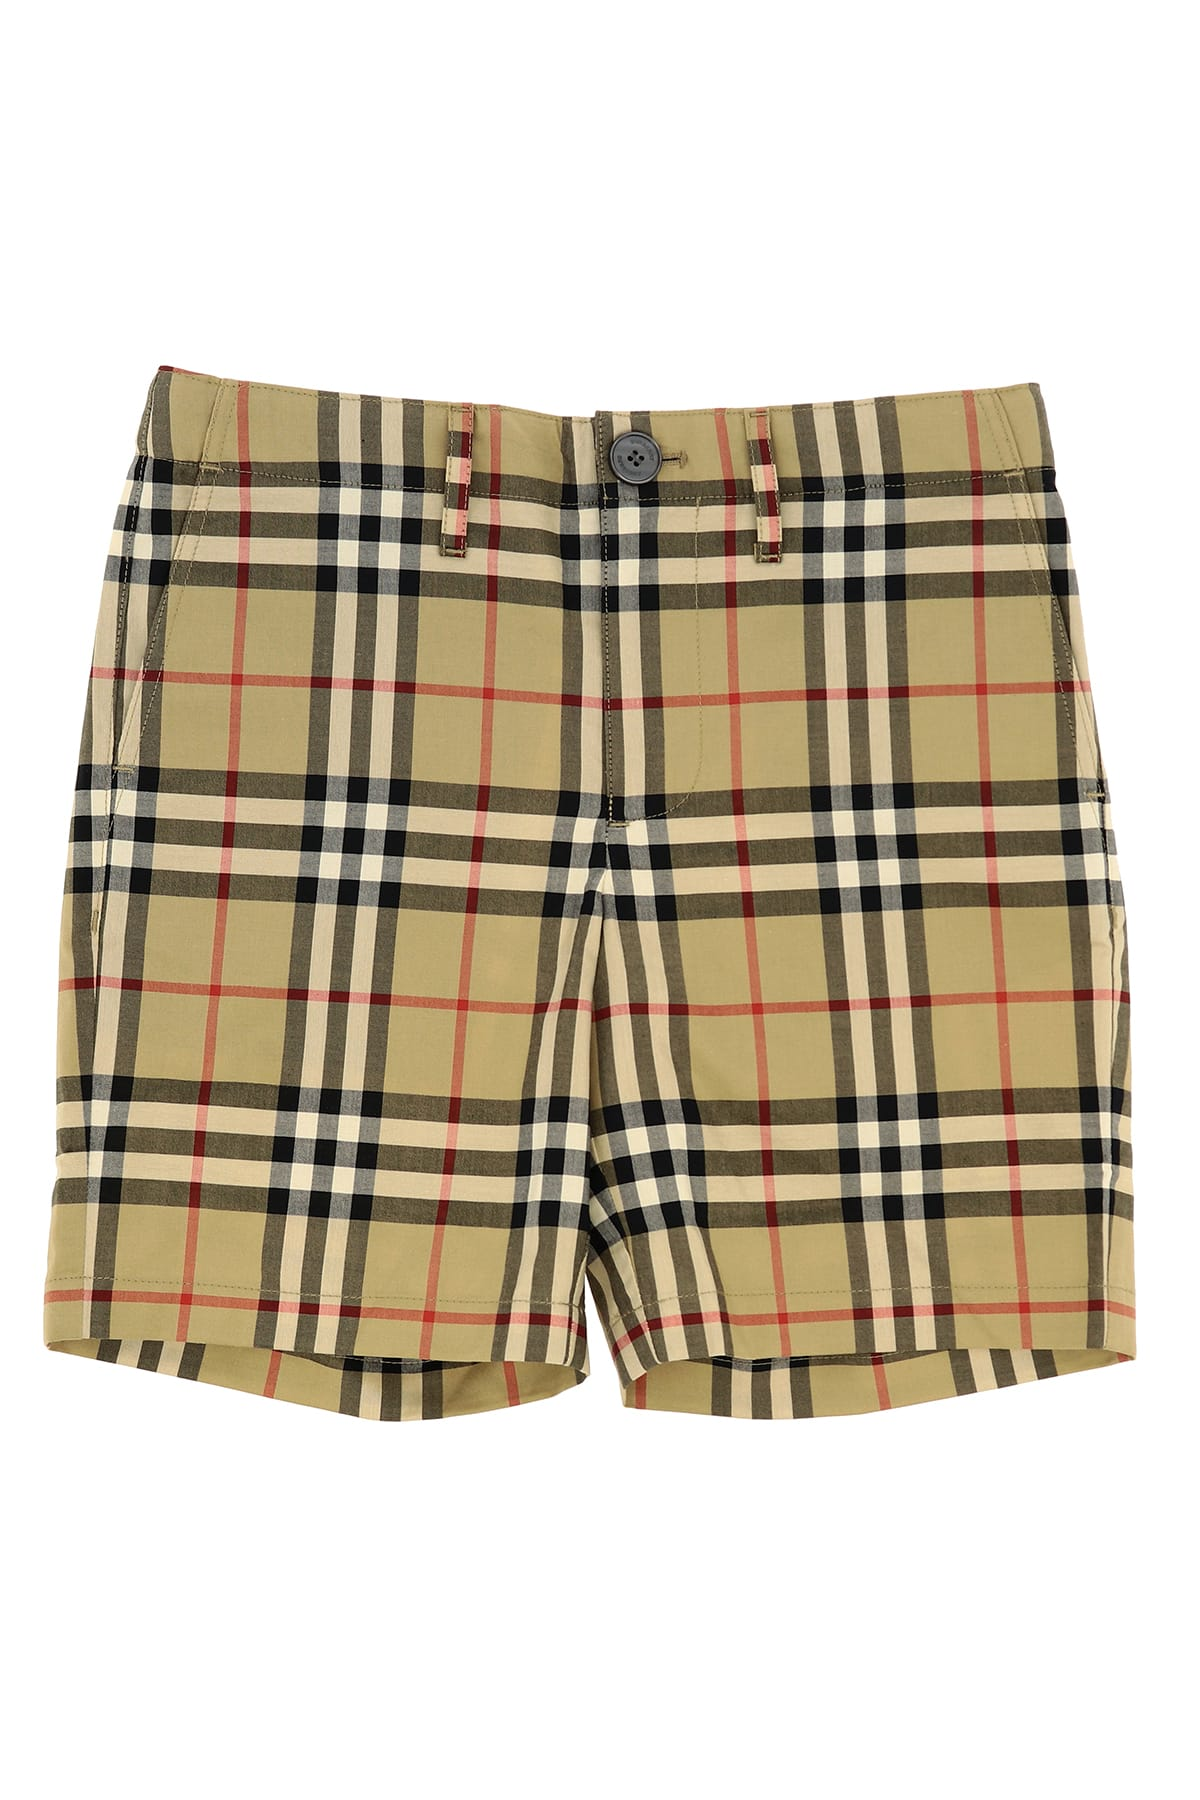 Burberry Kids' Shorts With Vintage Check Pattern In Archive Beige